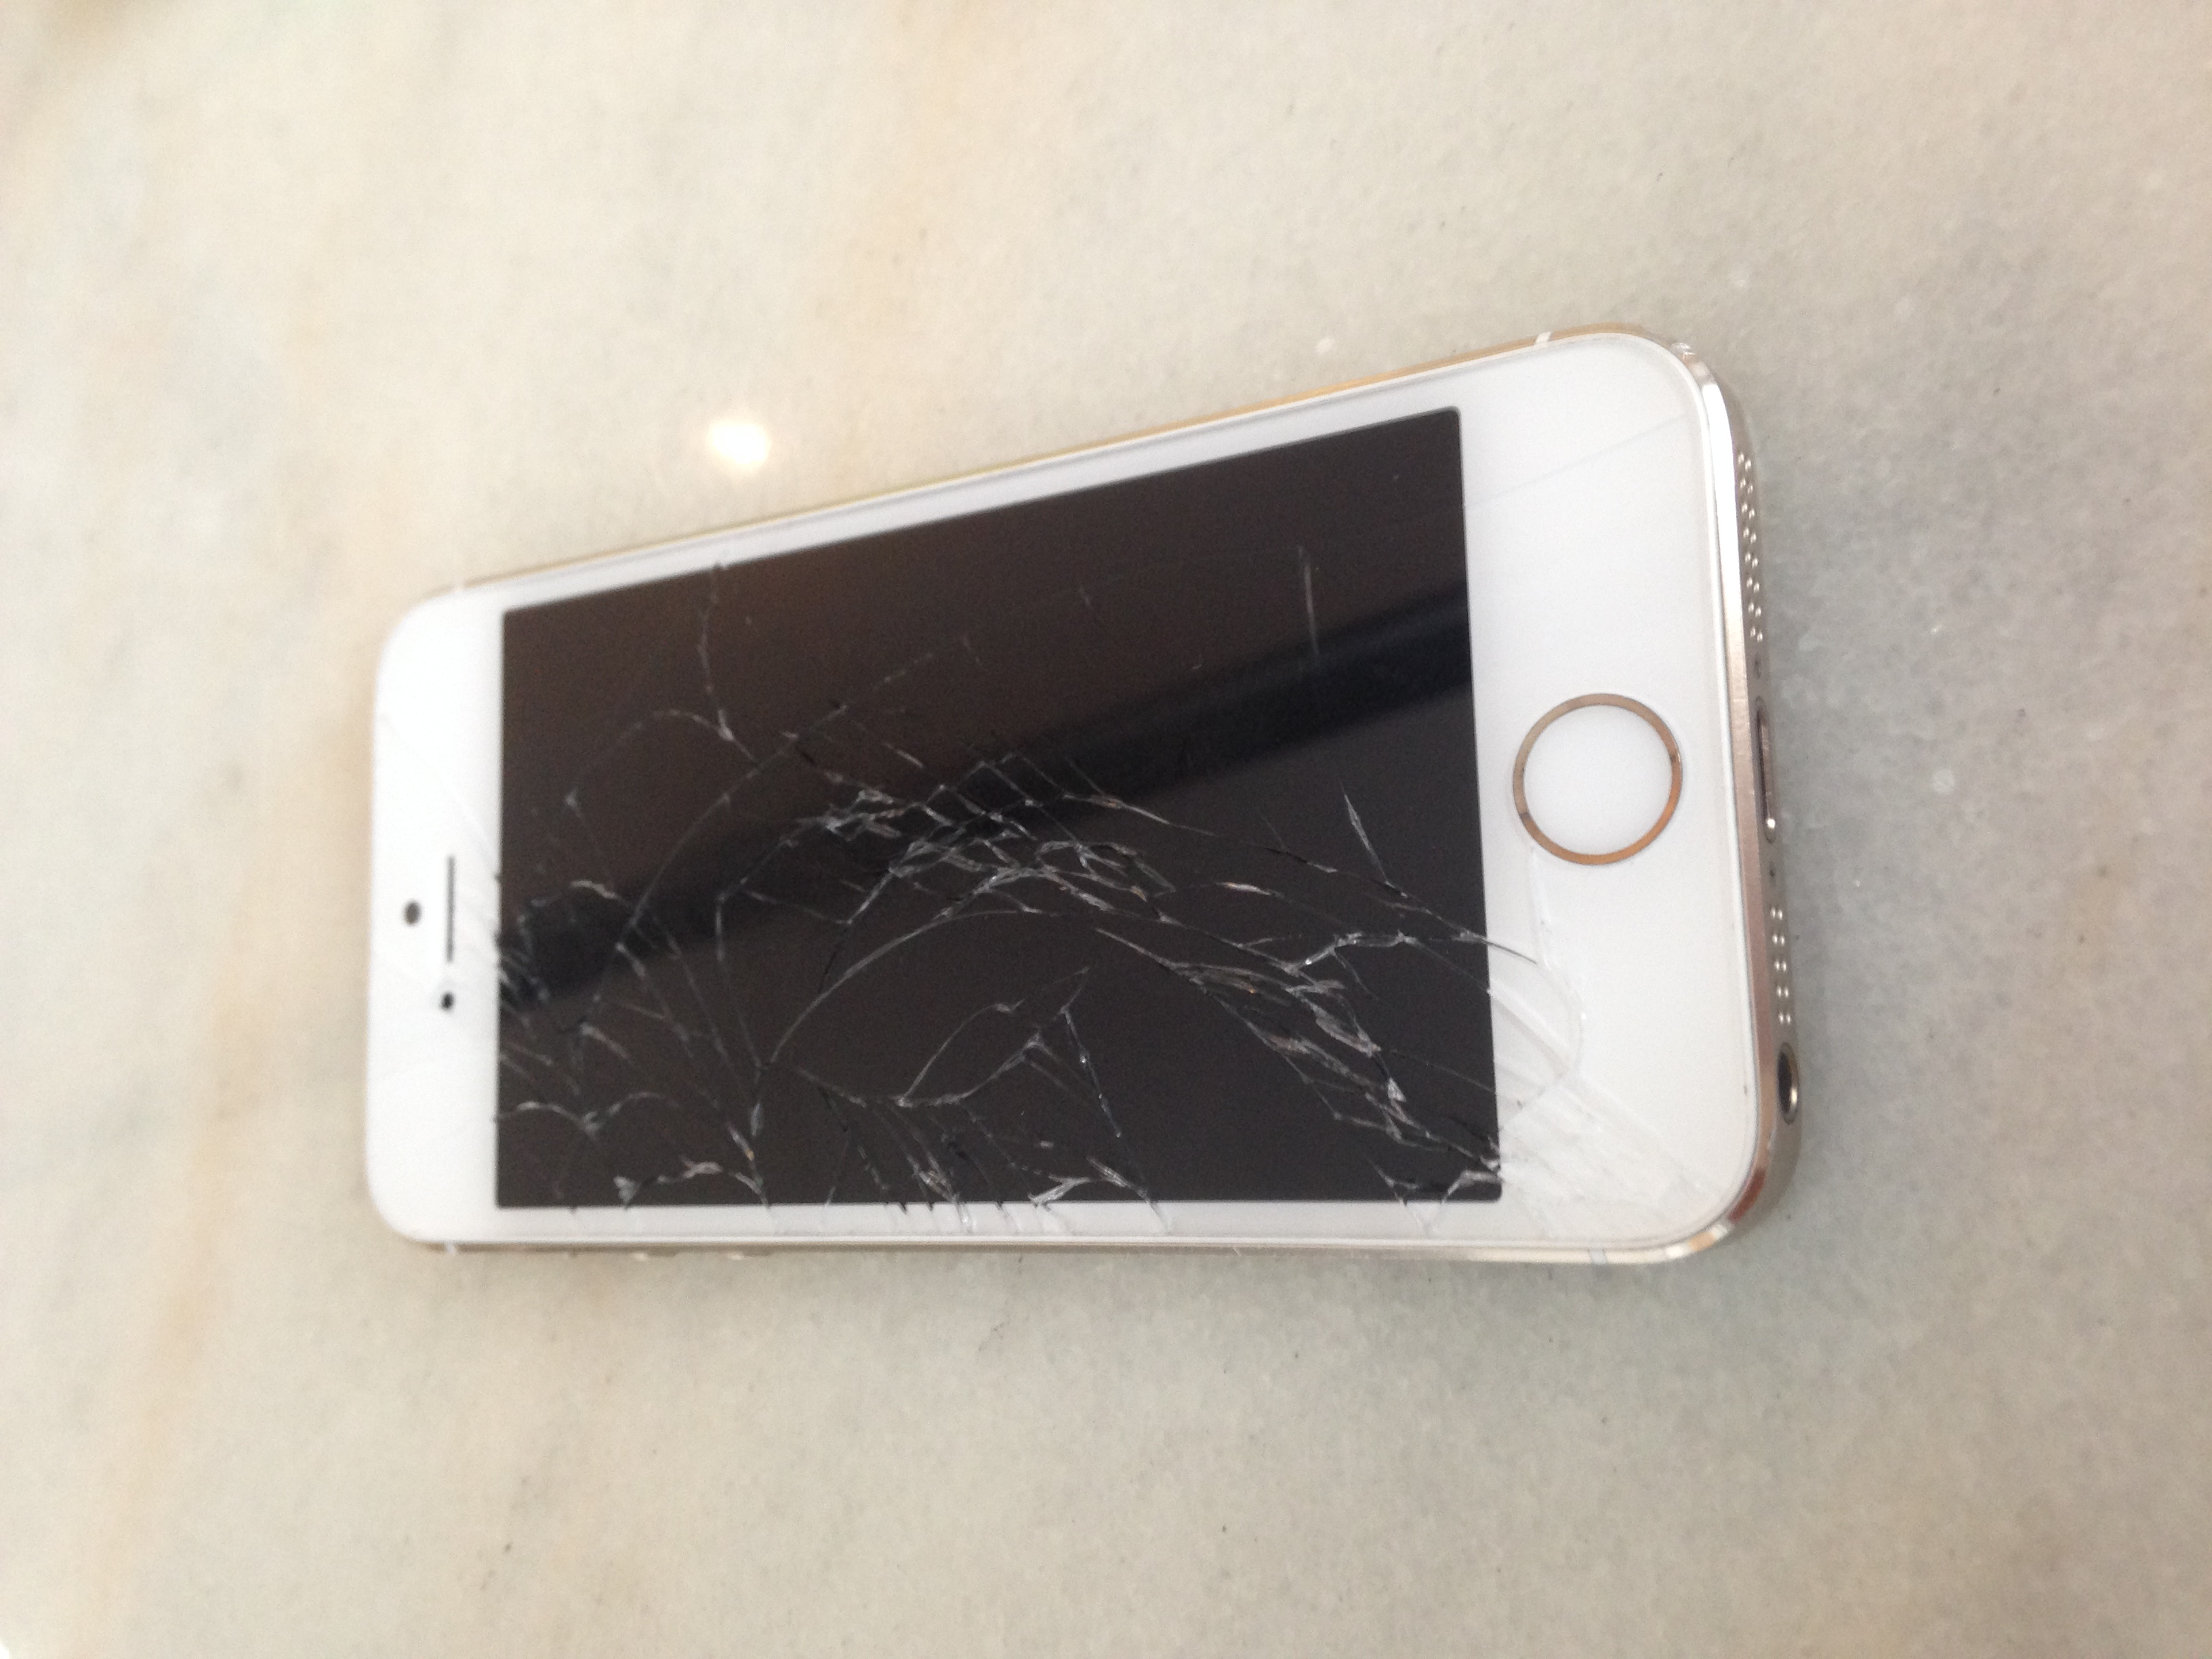 Dubai iPhone Repair? Where can I fix my iPhone 5S